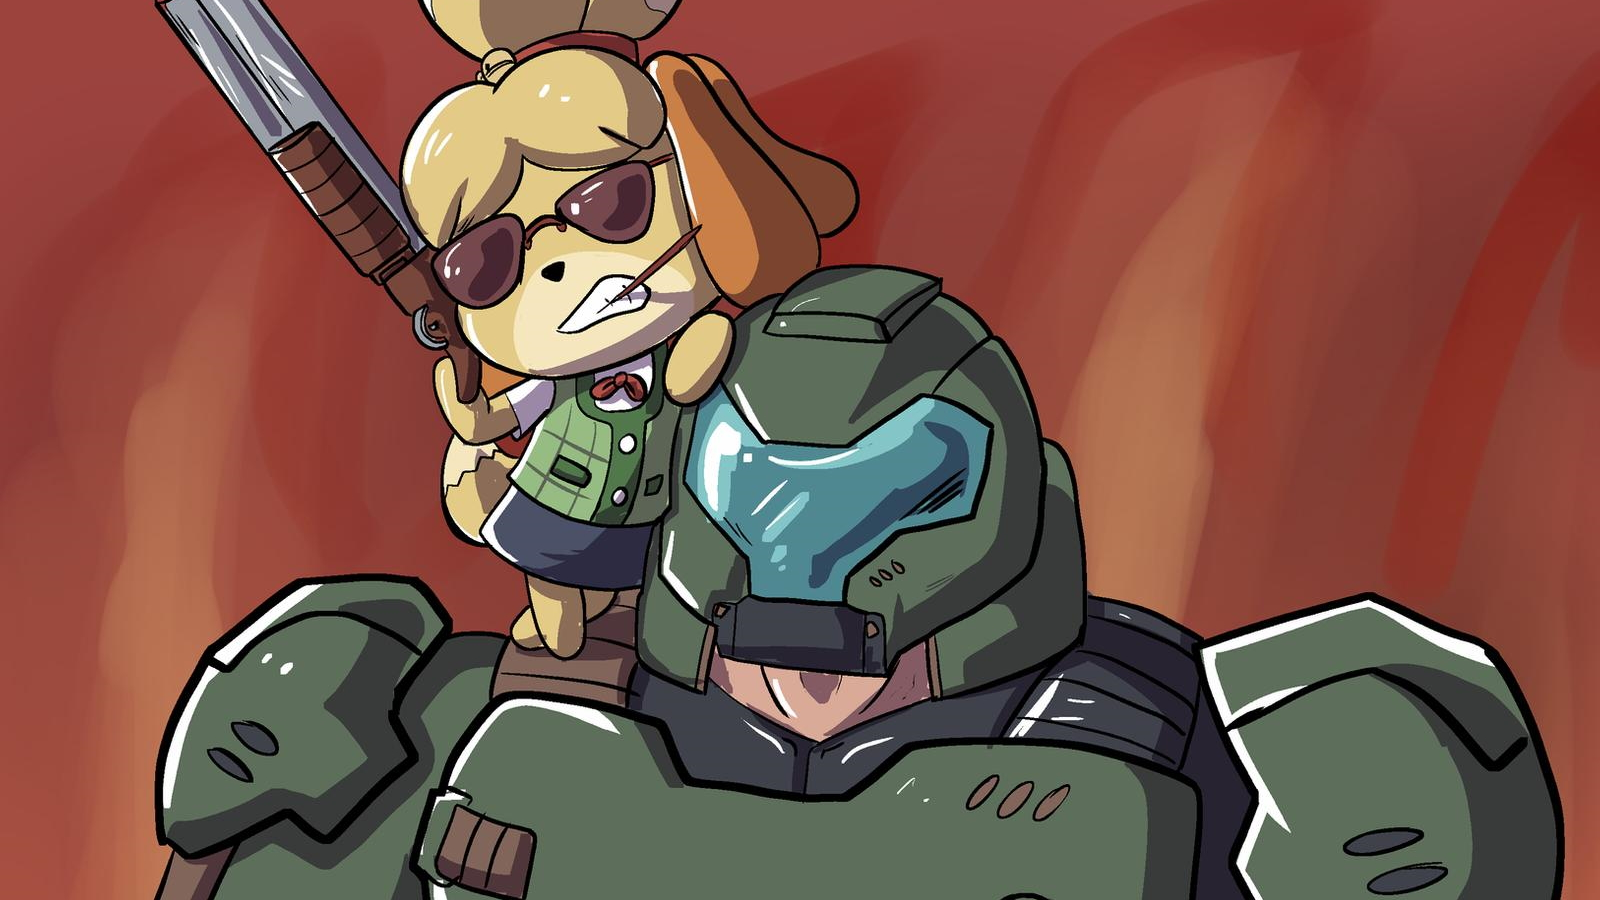 15 Doomguy And Isabelle Memes To Set You Up For Real Gamer Hours